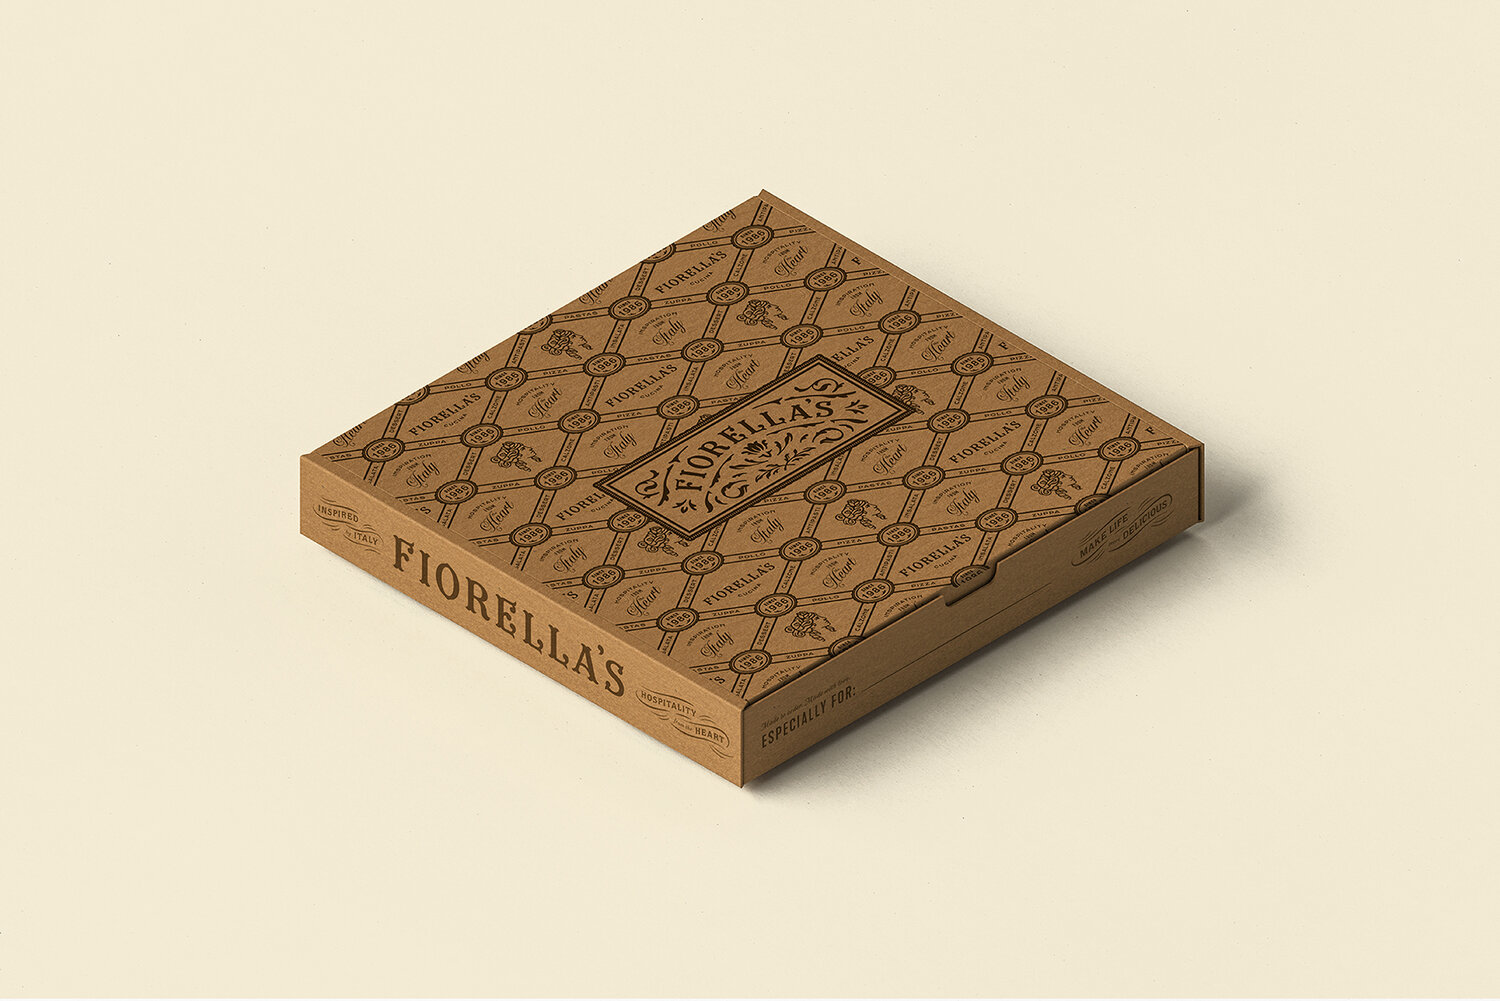 Fiorellas_box